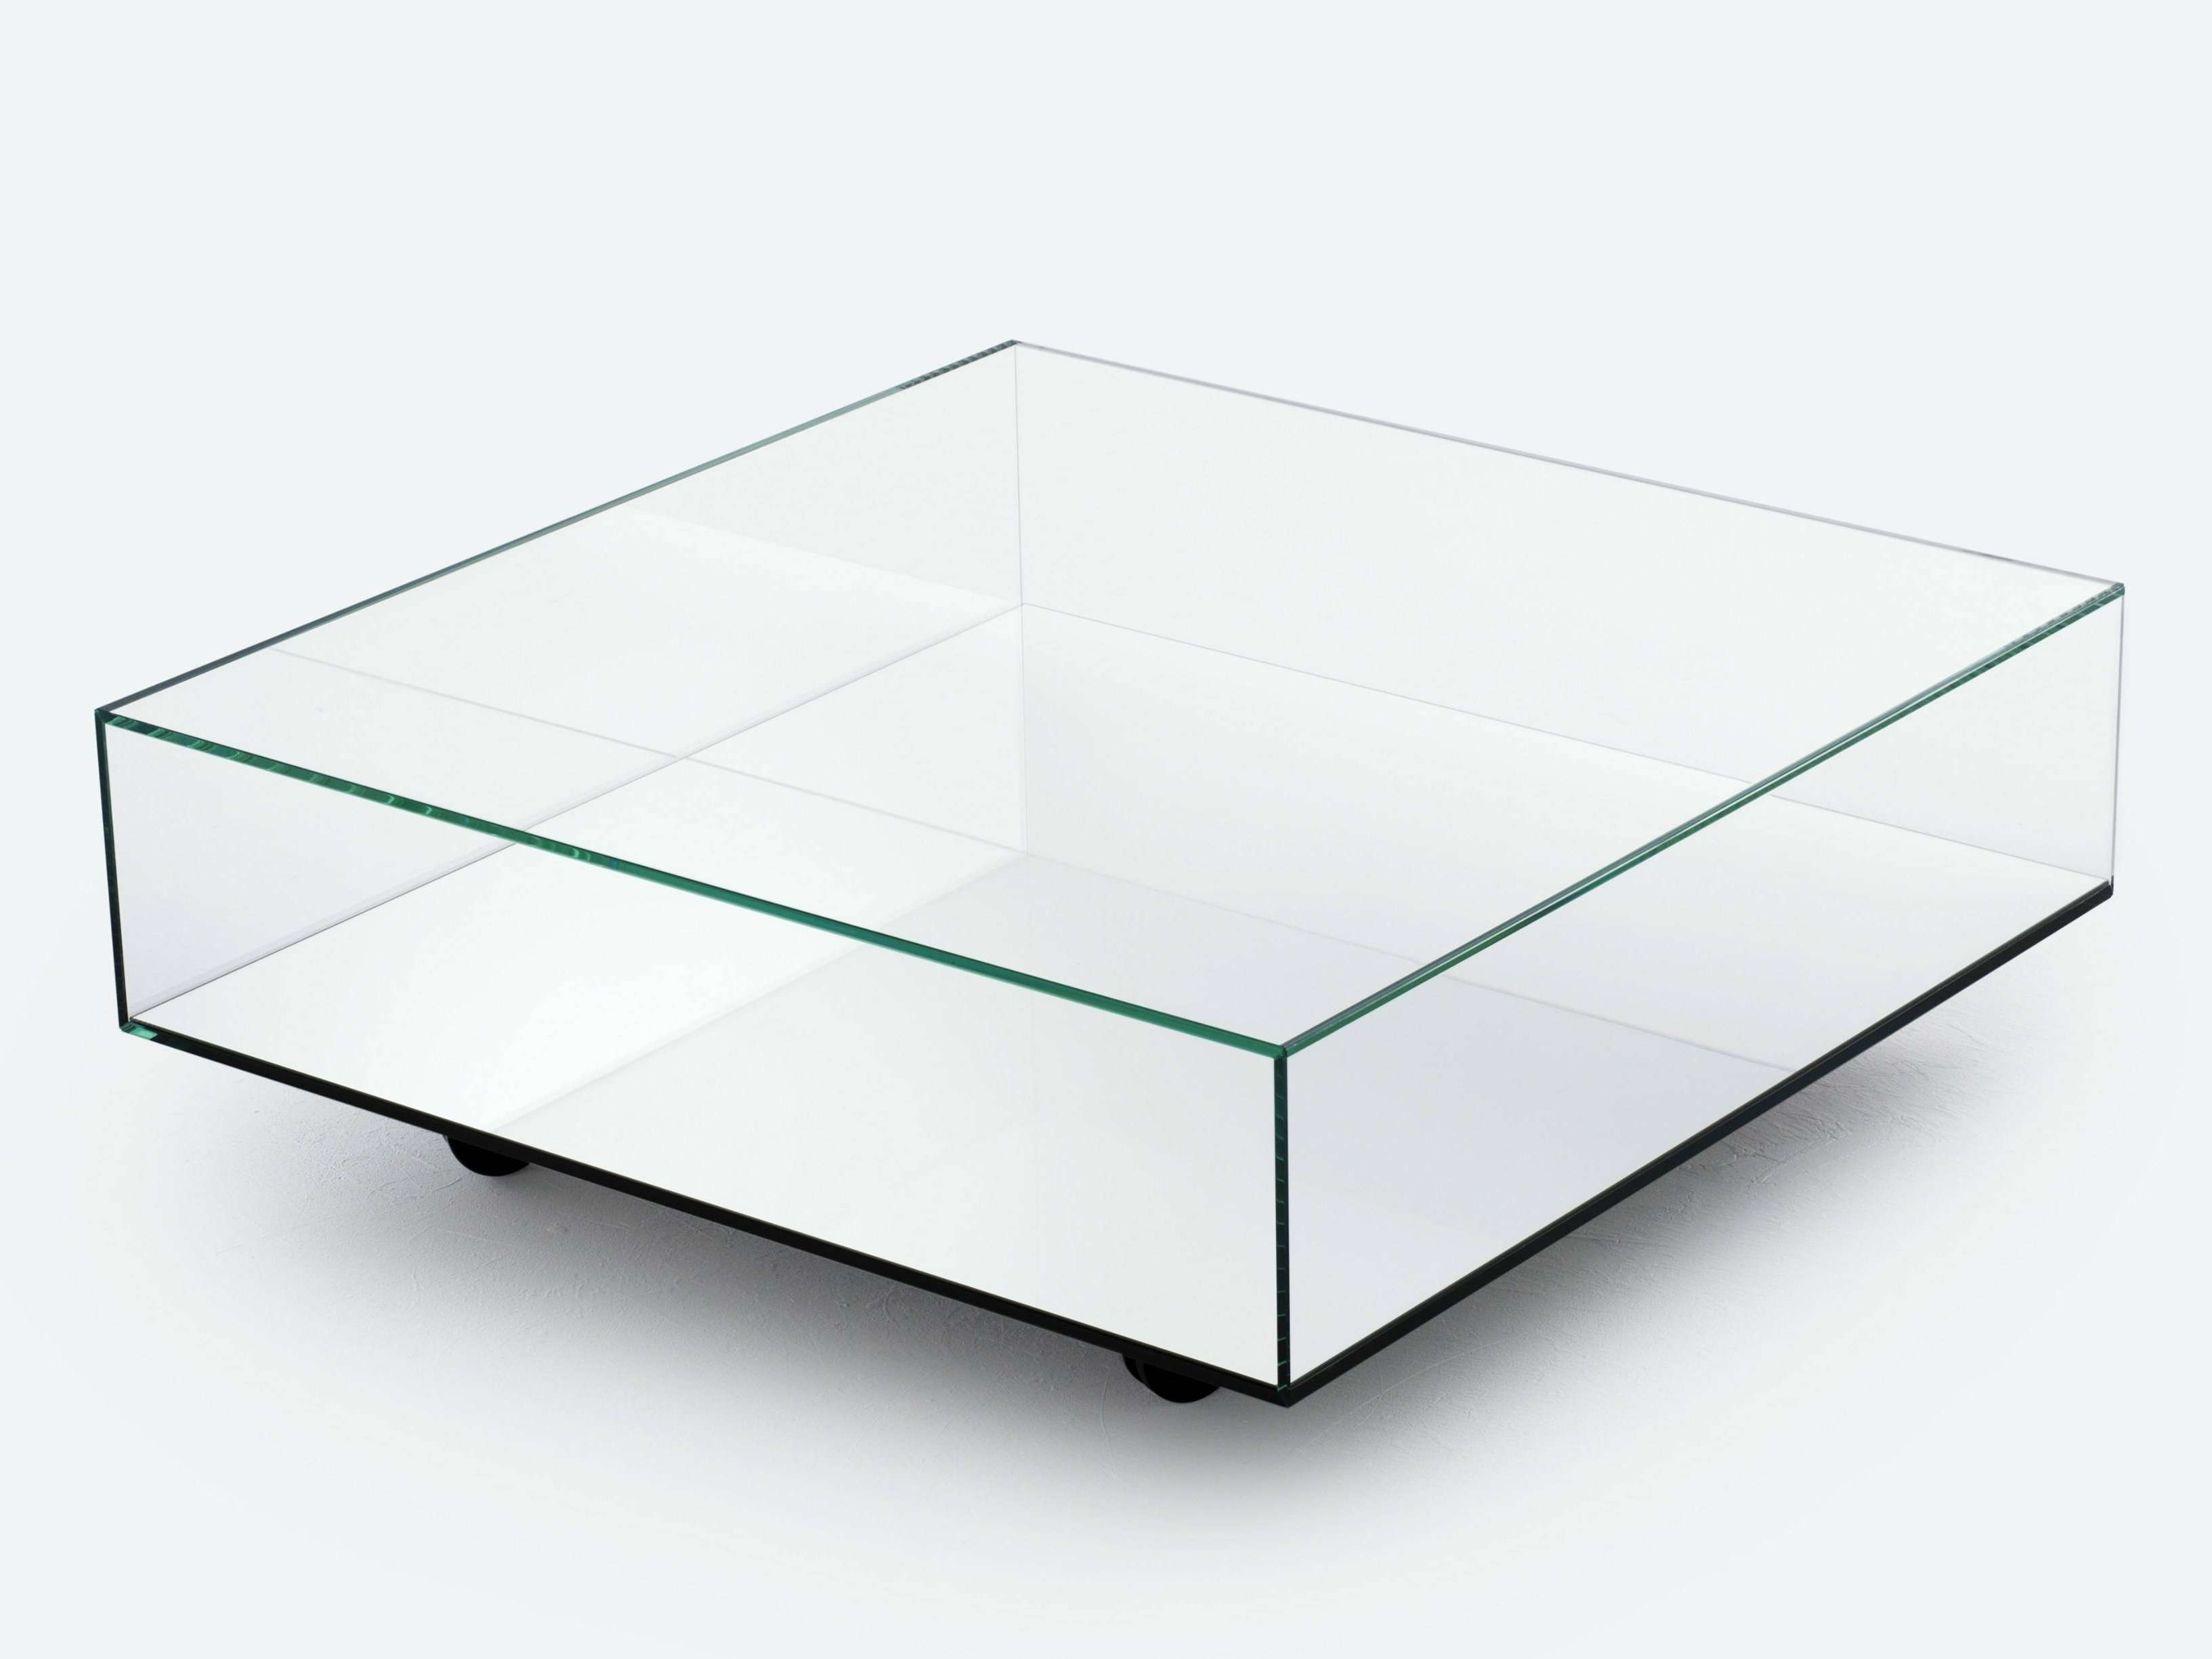 Square Glass Coffee Table With Shelf Black Contemporary End Tables